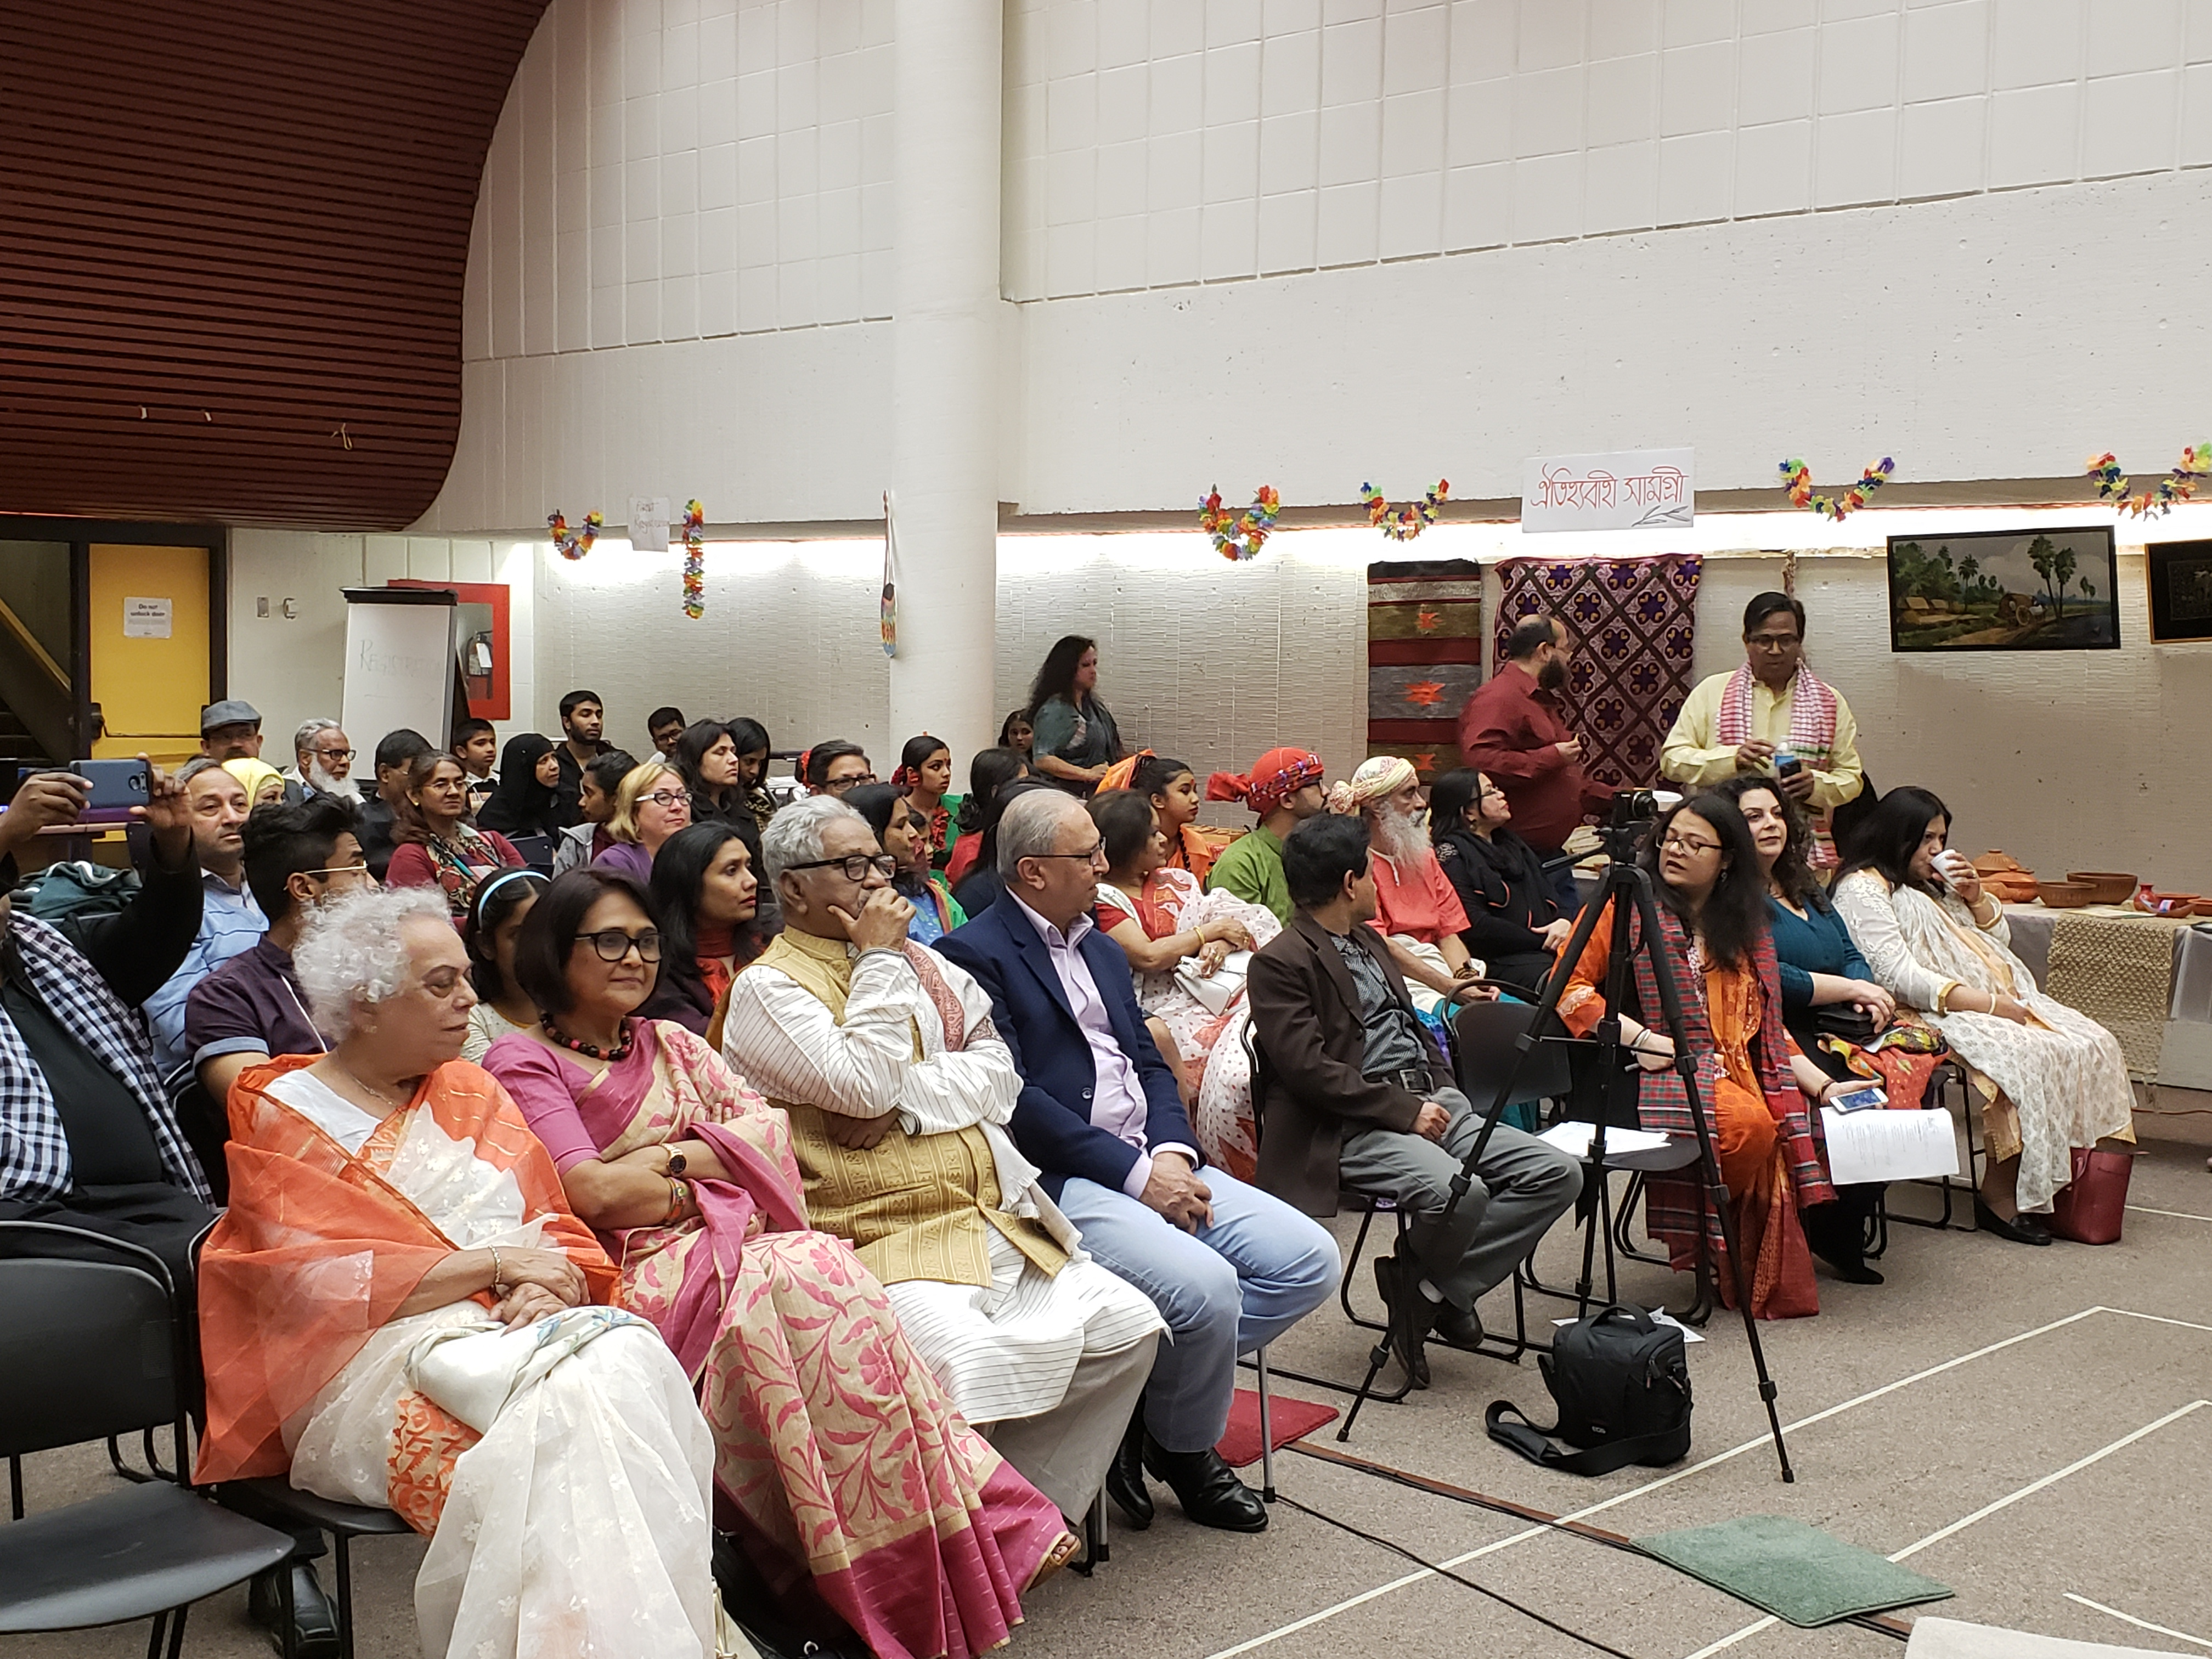 A section of the audience